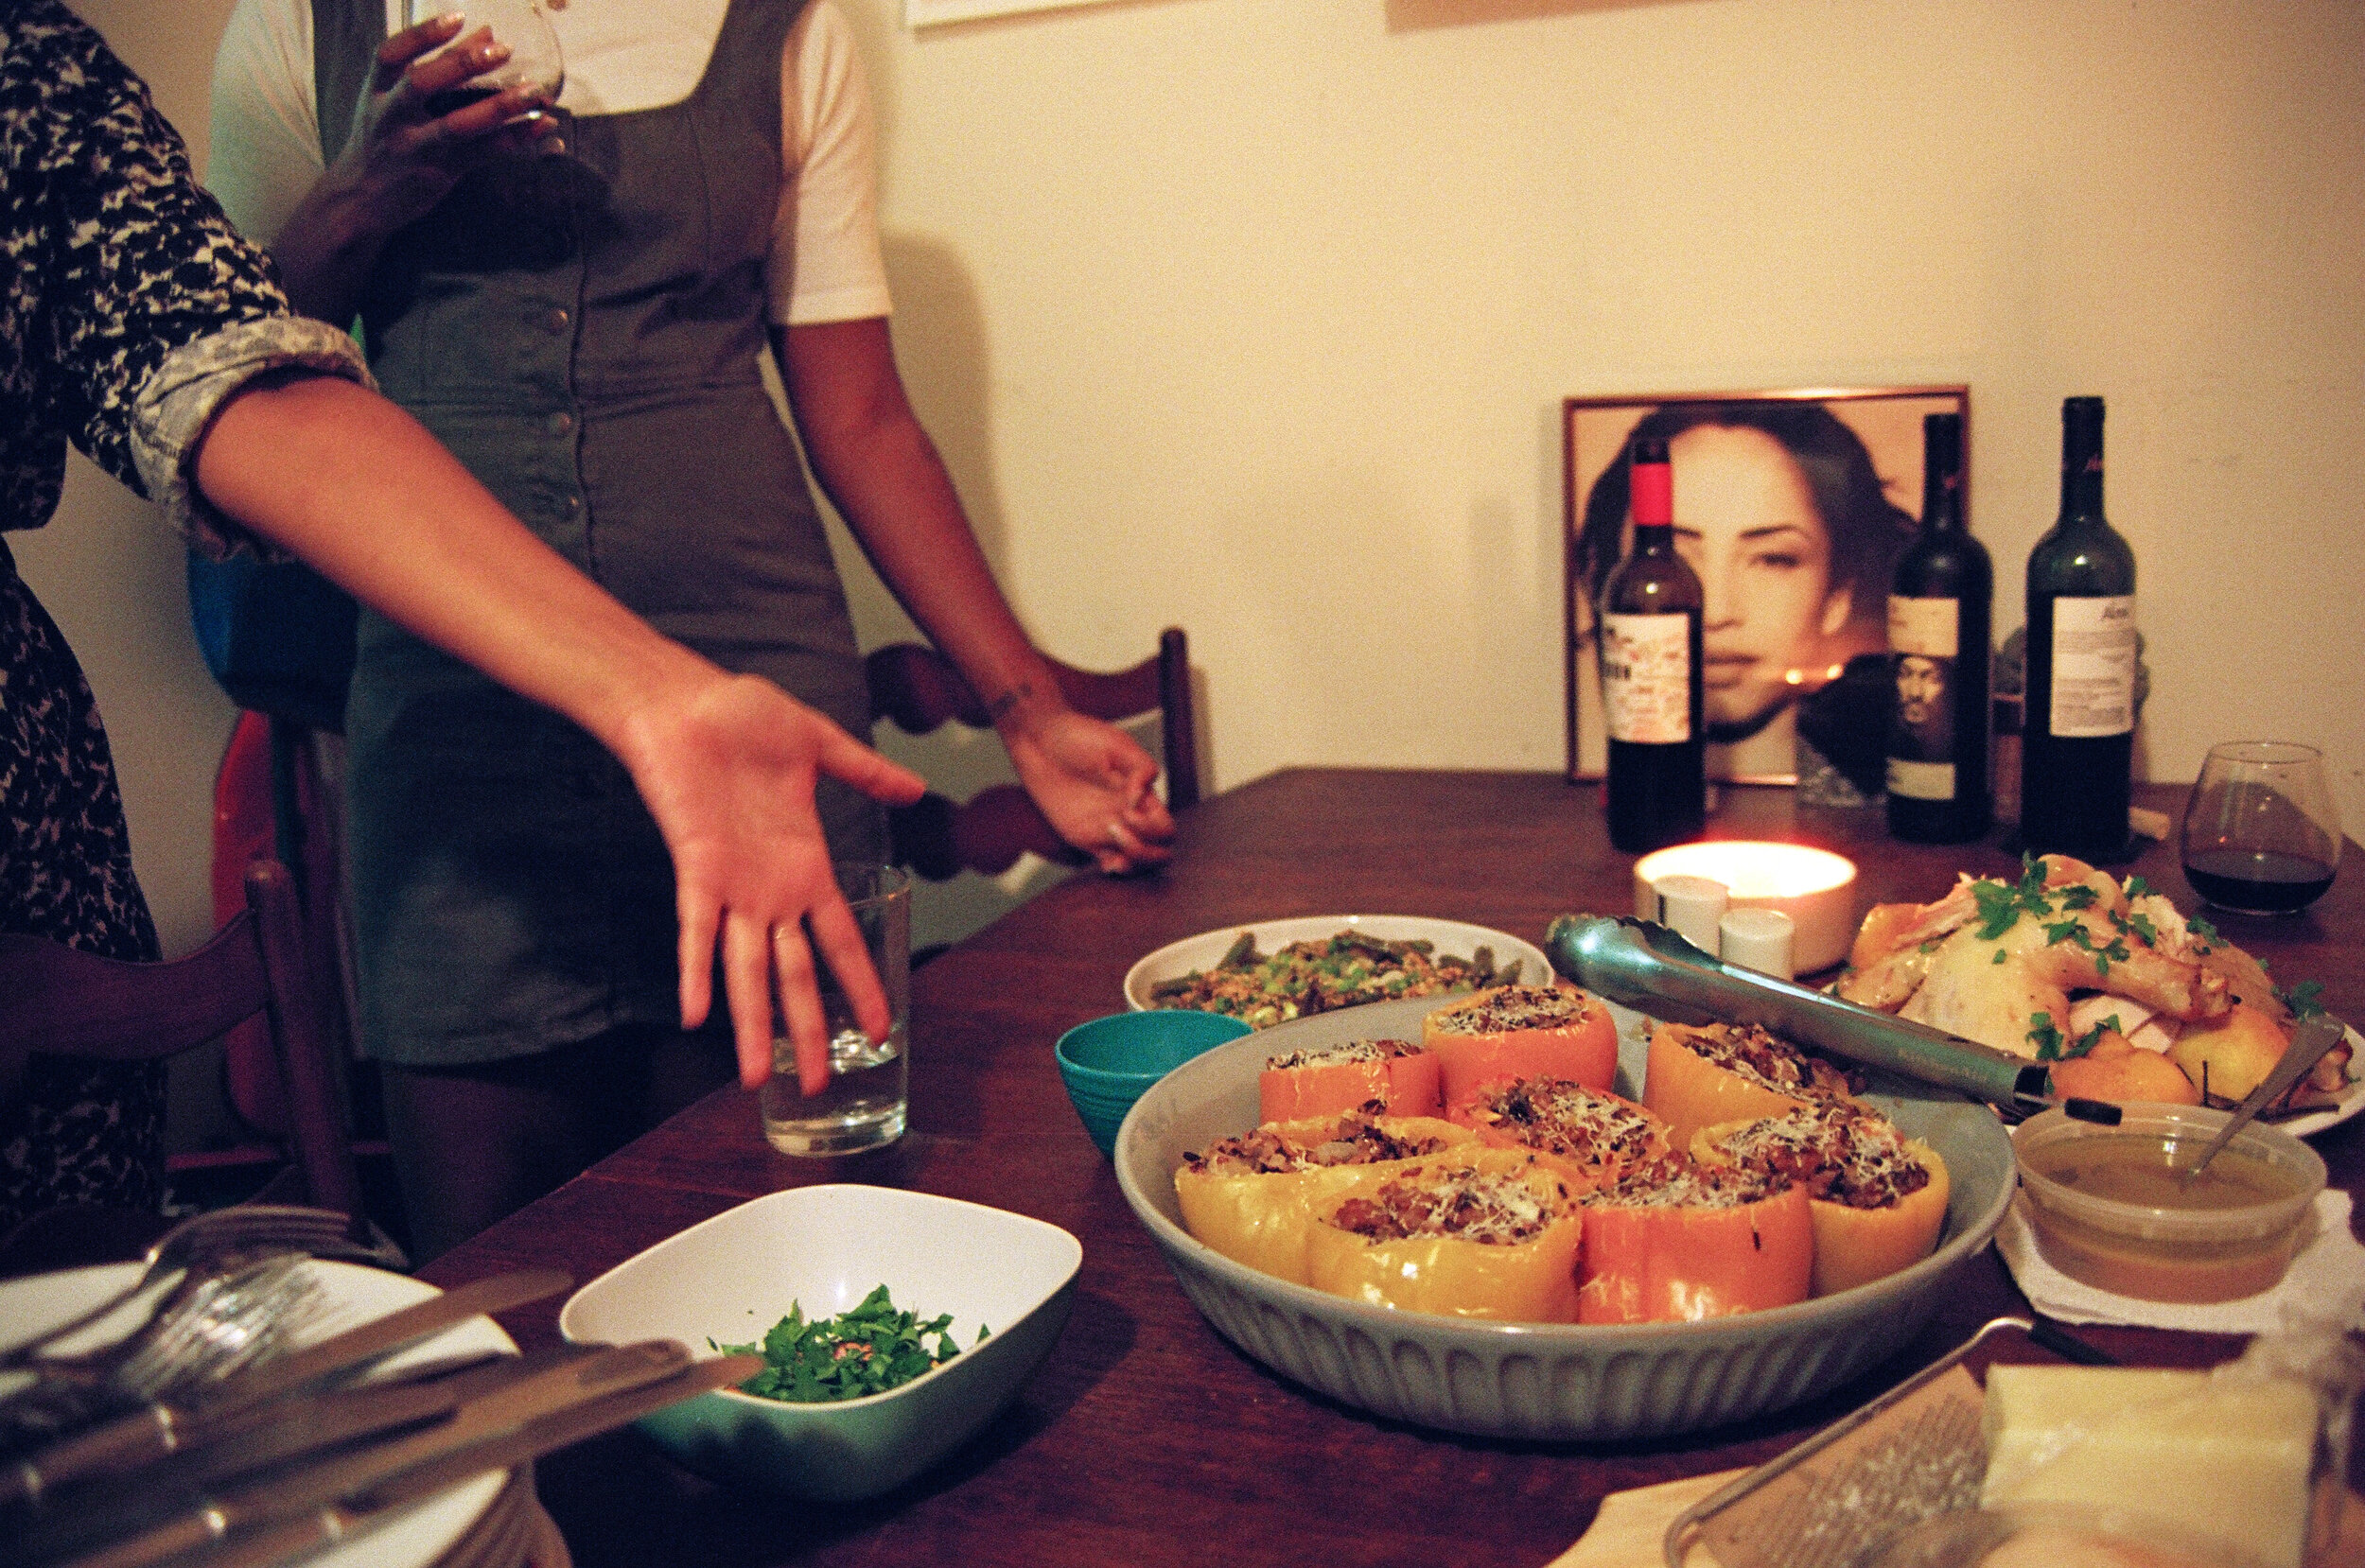 Black Appetit dinner - Time in This Time